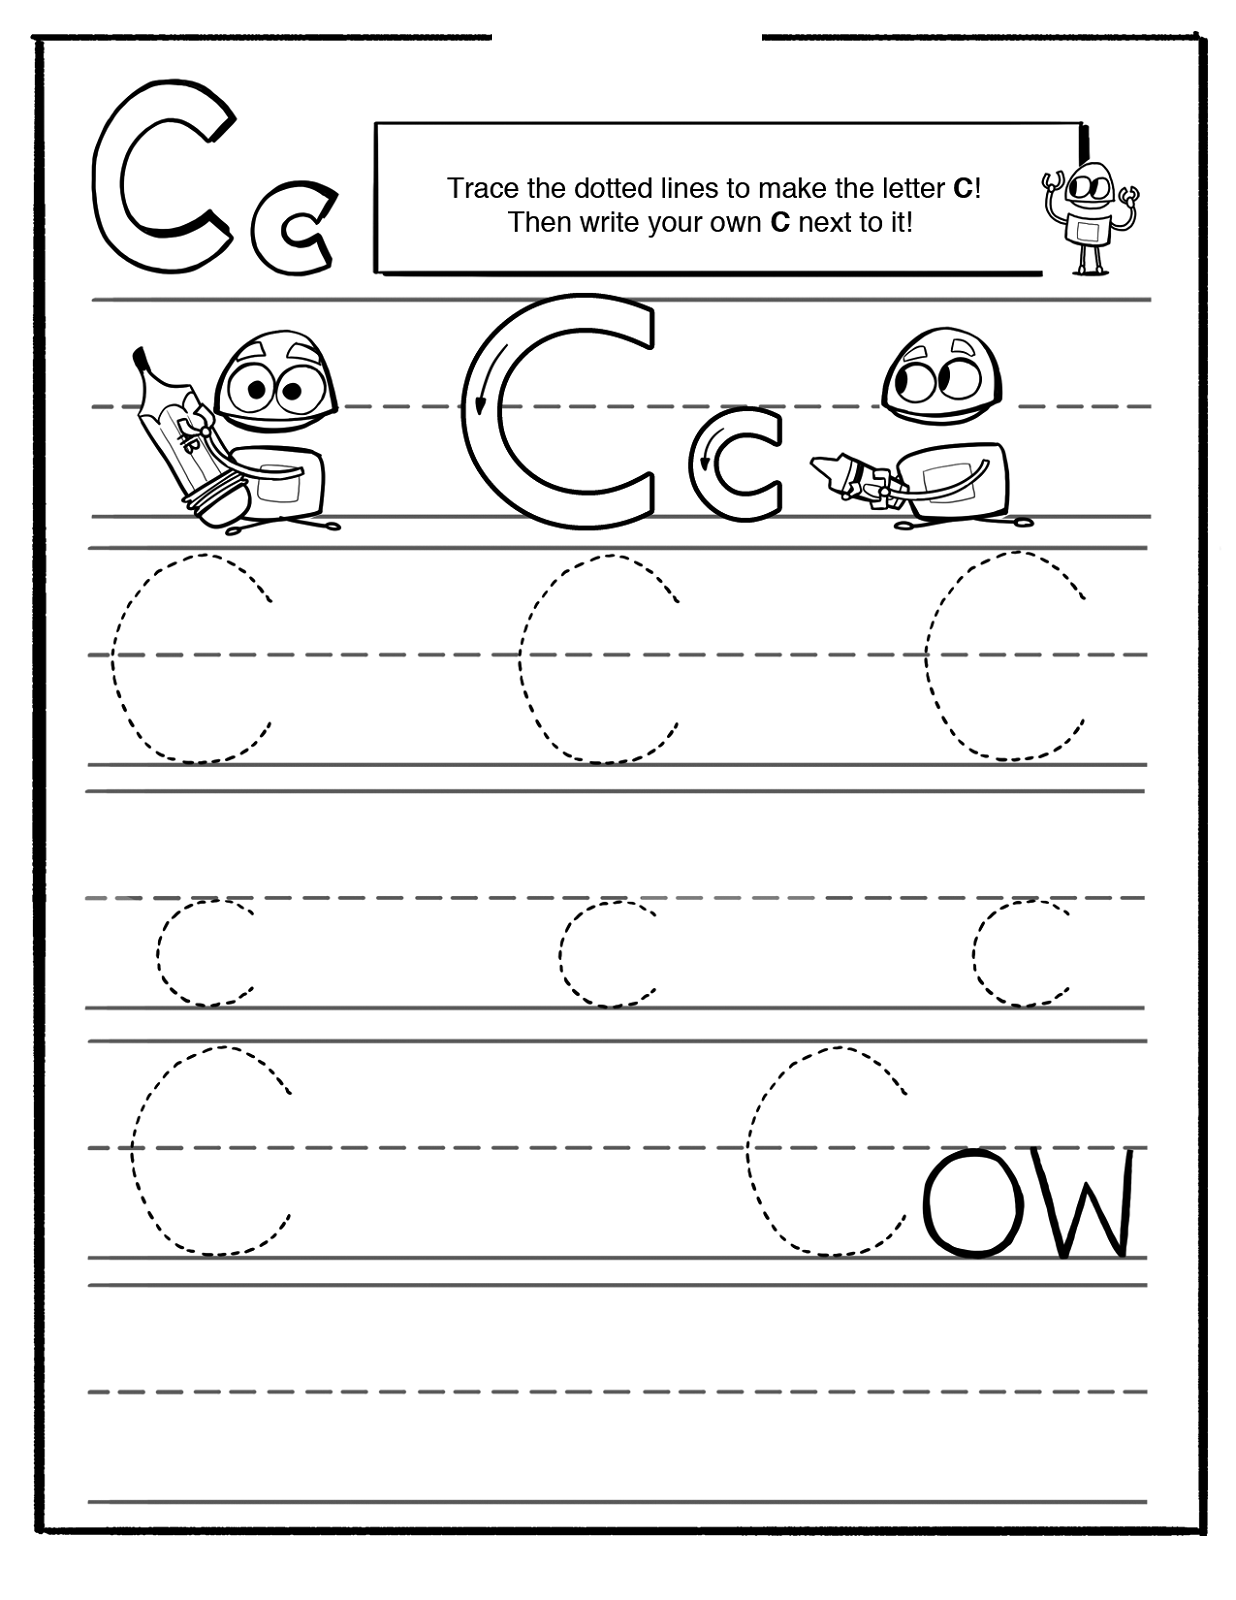 Preschool Tracing Pages With Images